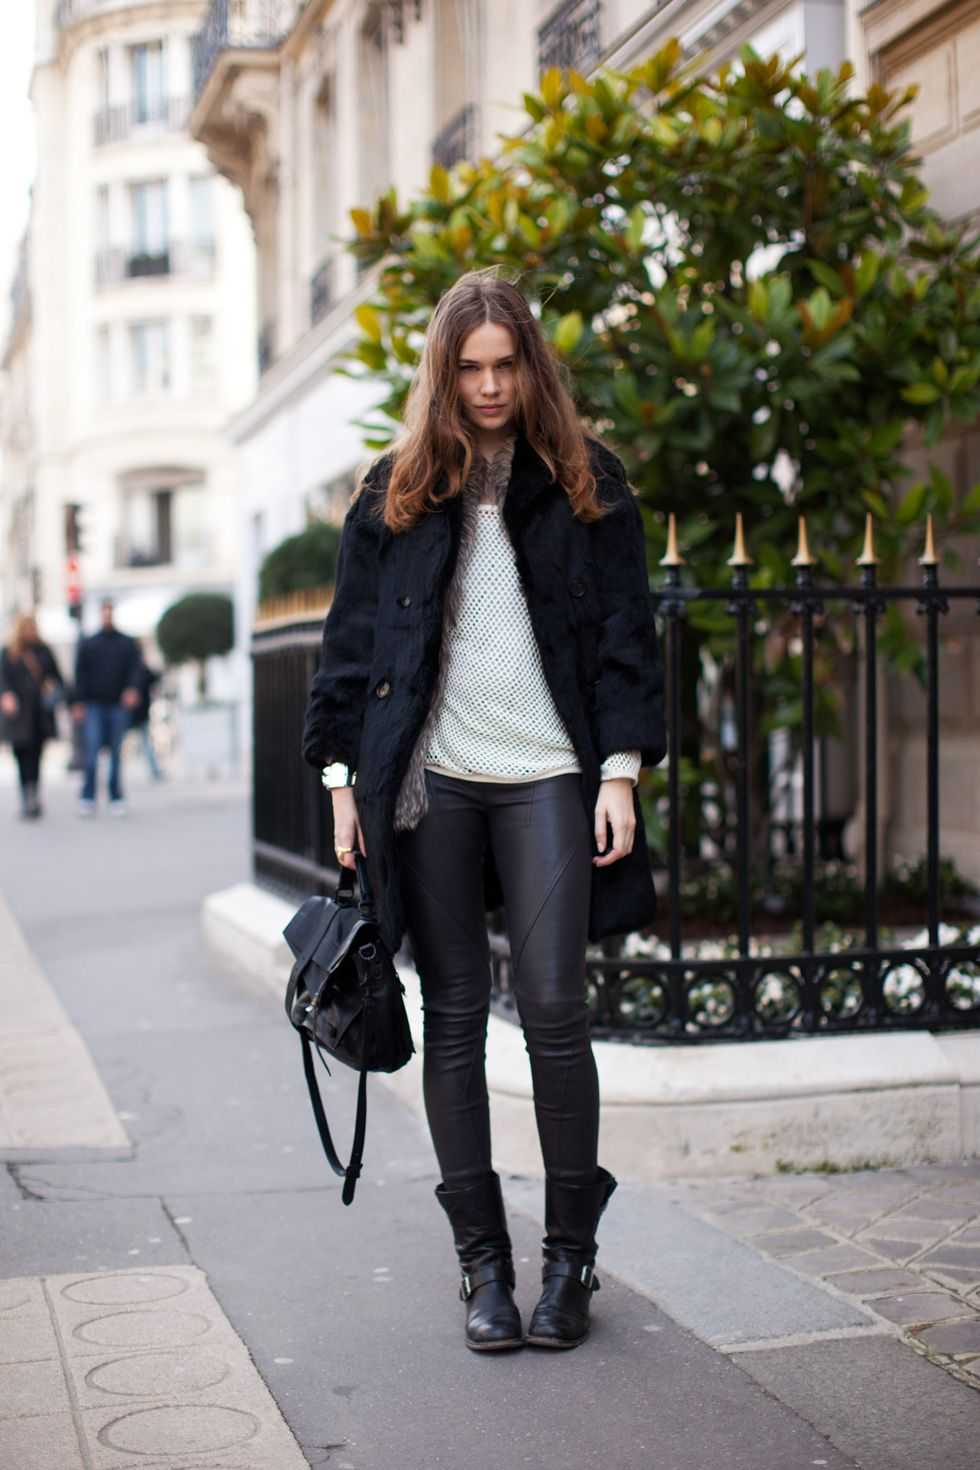 Incredible Leather Leggings with Boots : Stunning Leather Leggings ...